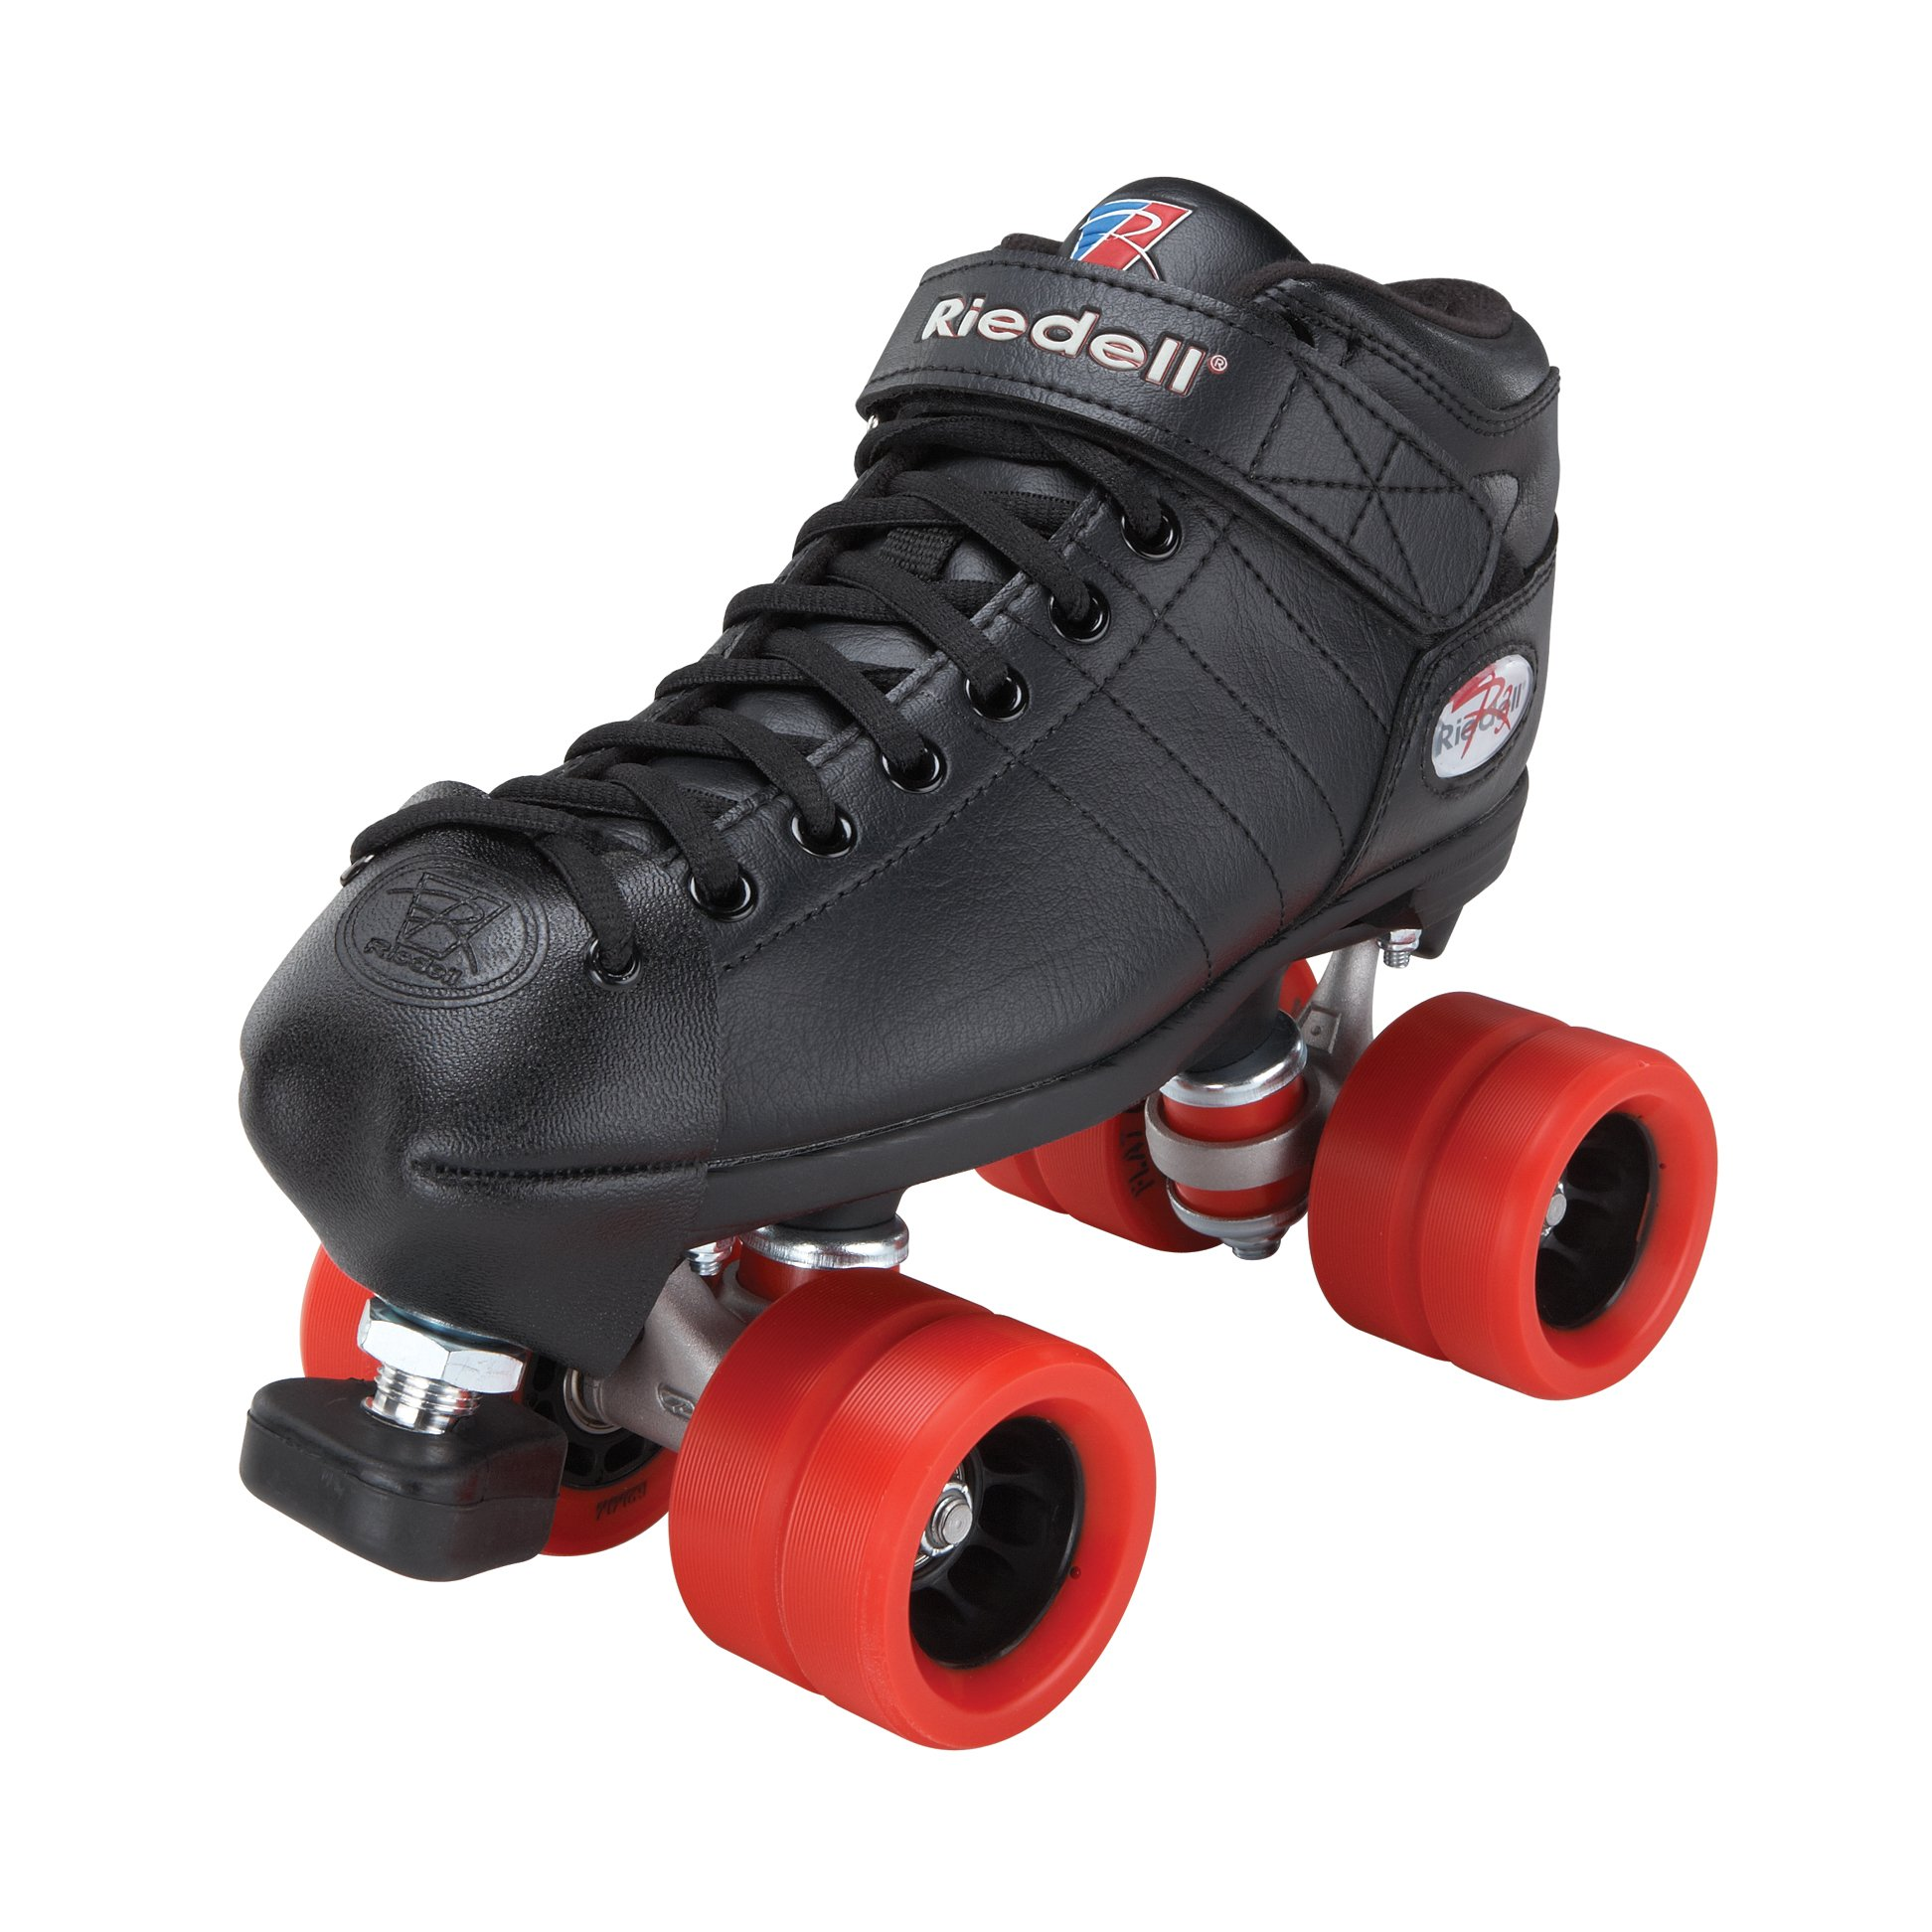 Derby Riedell Roller R3 (Black, 14 Medium) by Derby